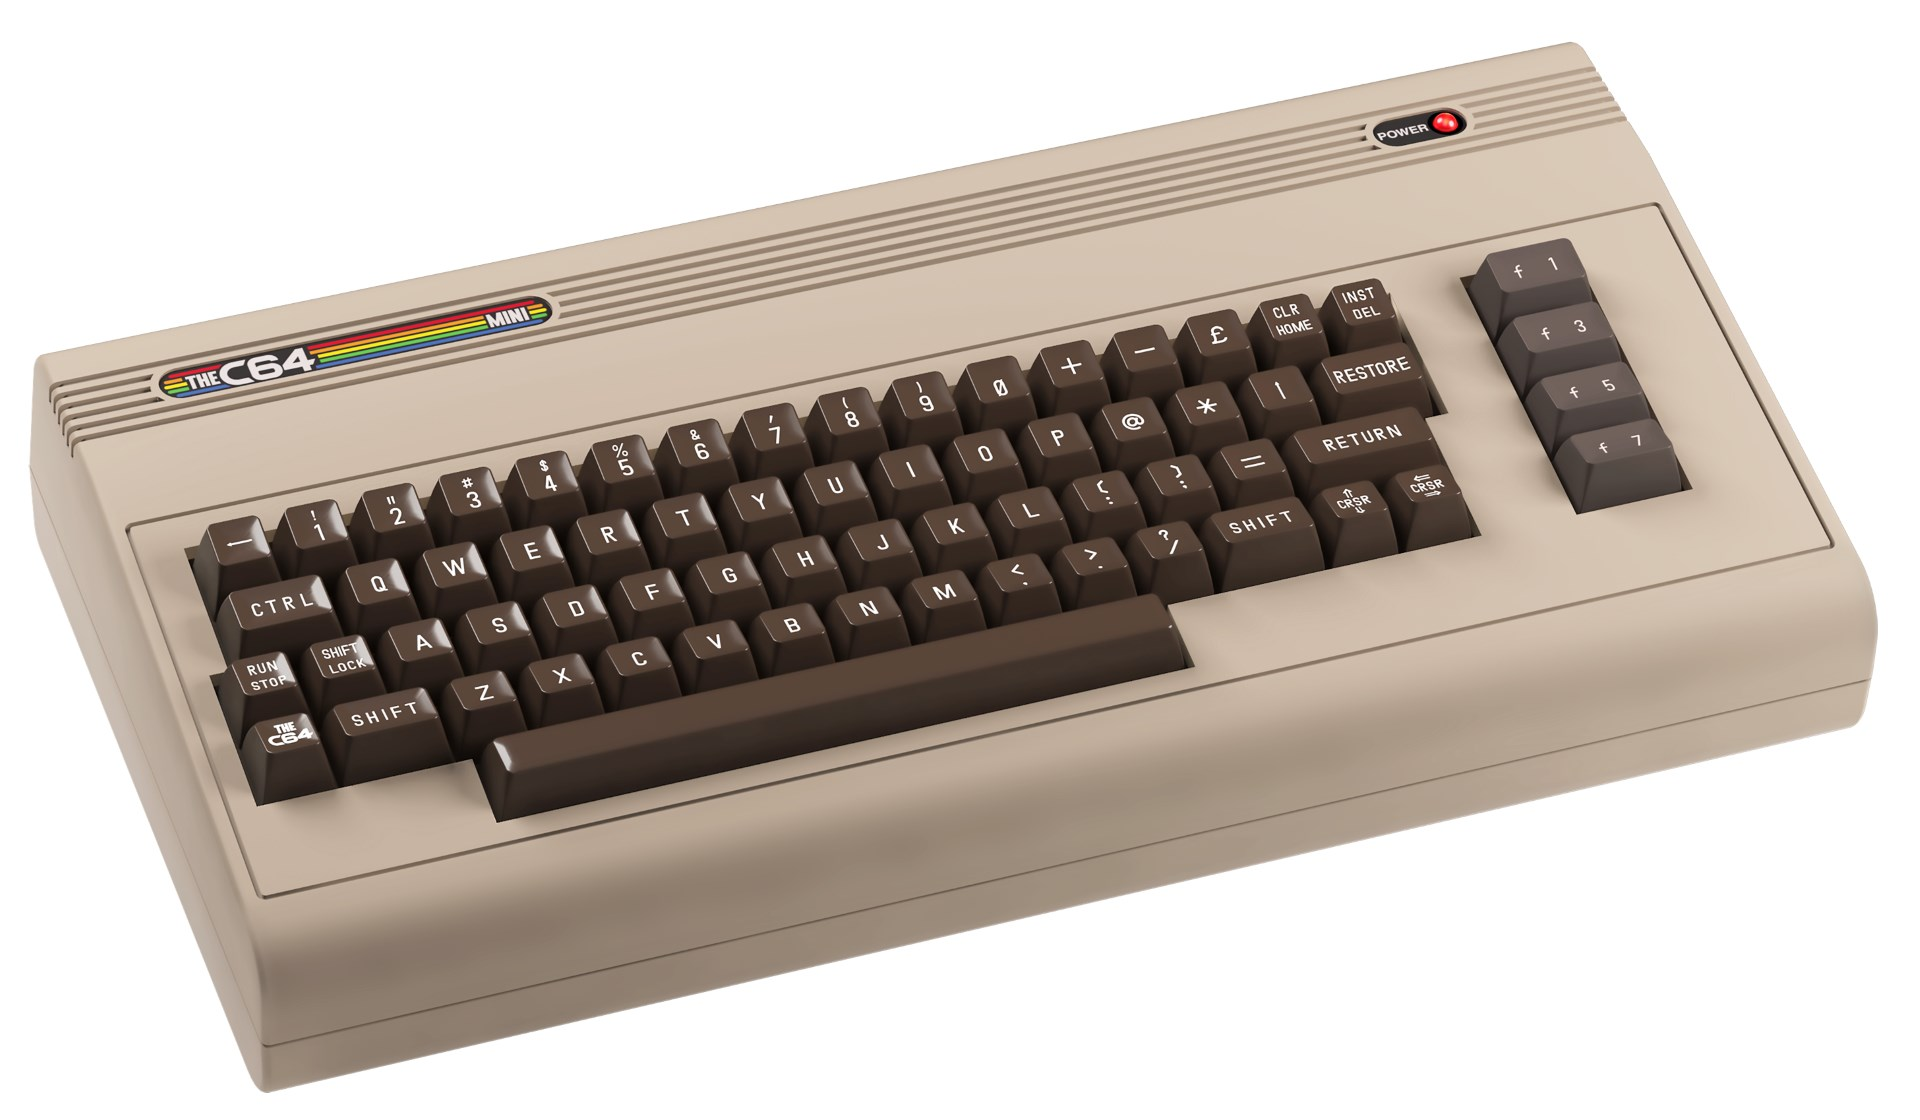 The C64 Mini, with 64 games and BASIC installed, arrives in